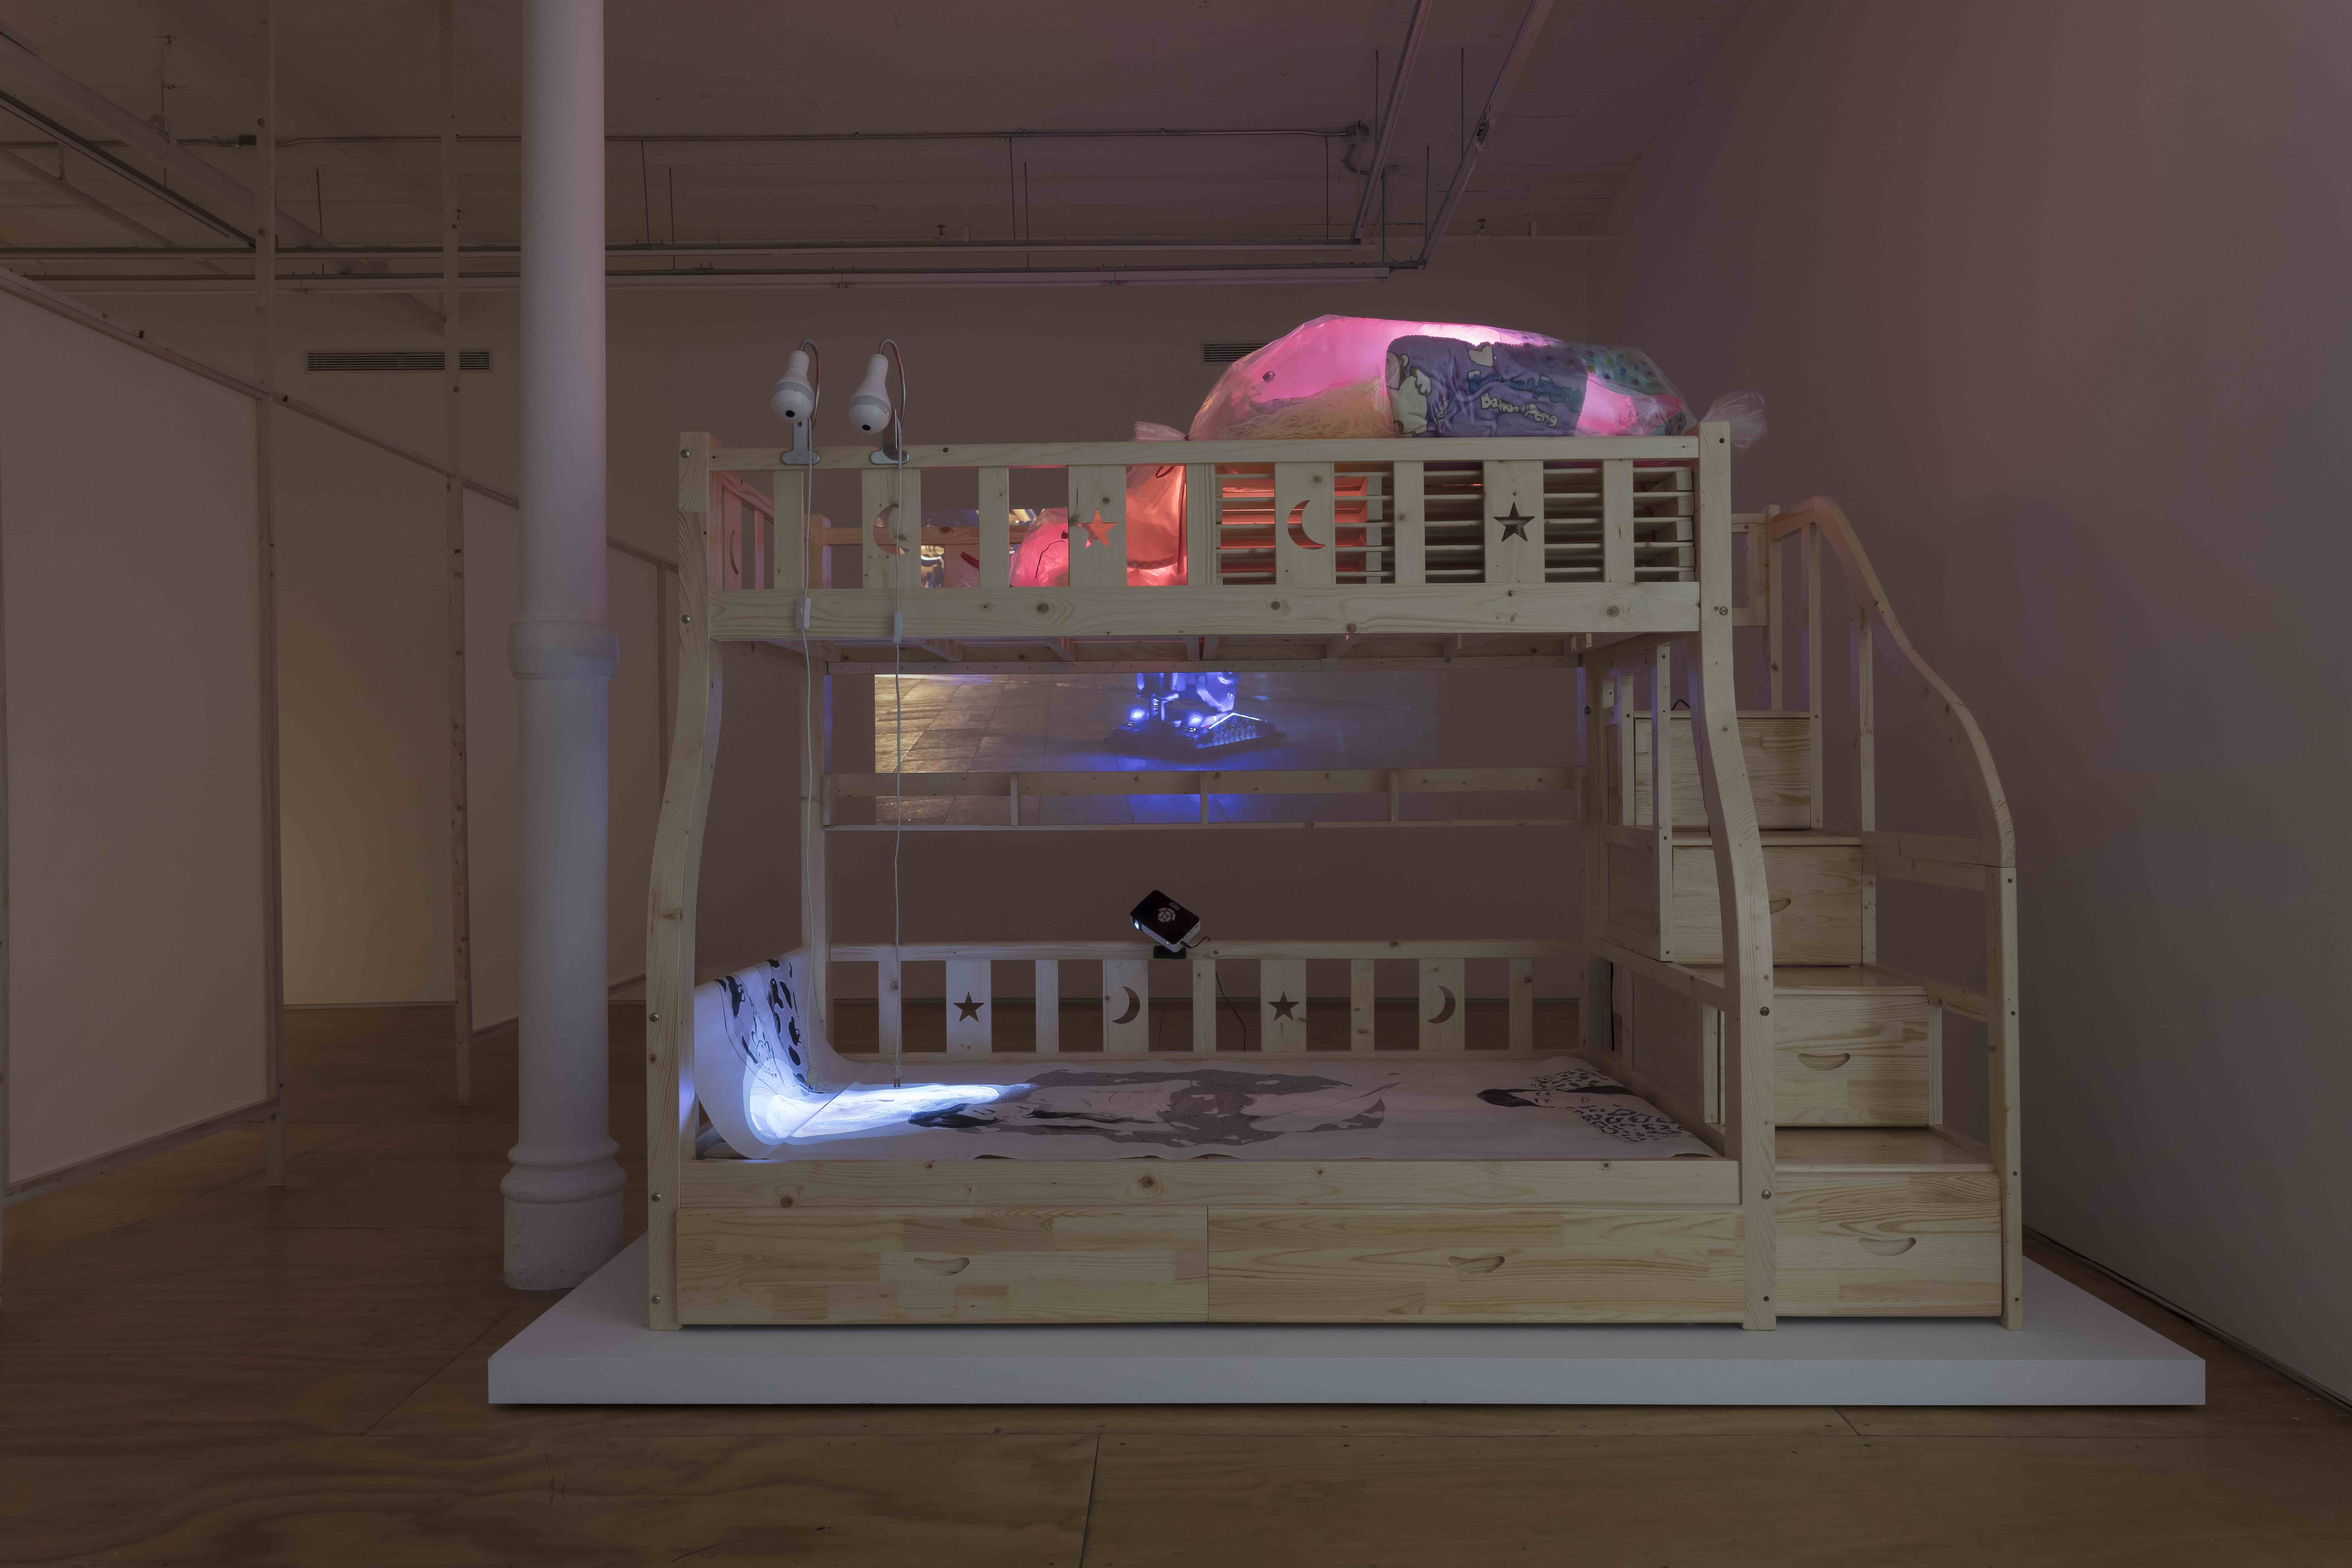 Amy Lien and Enzo Camacho, Mother Holding Taobao Child, 2018, installation view, courtesy Canal 47